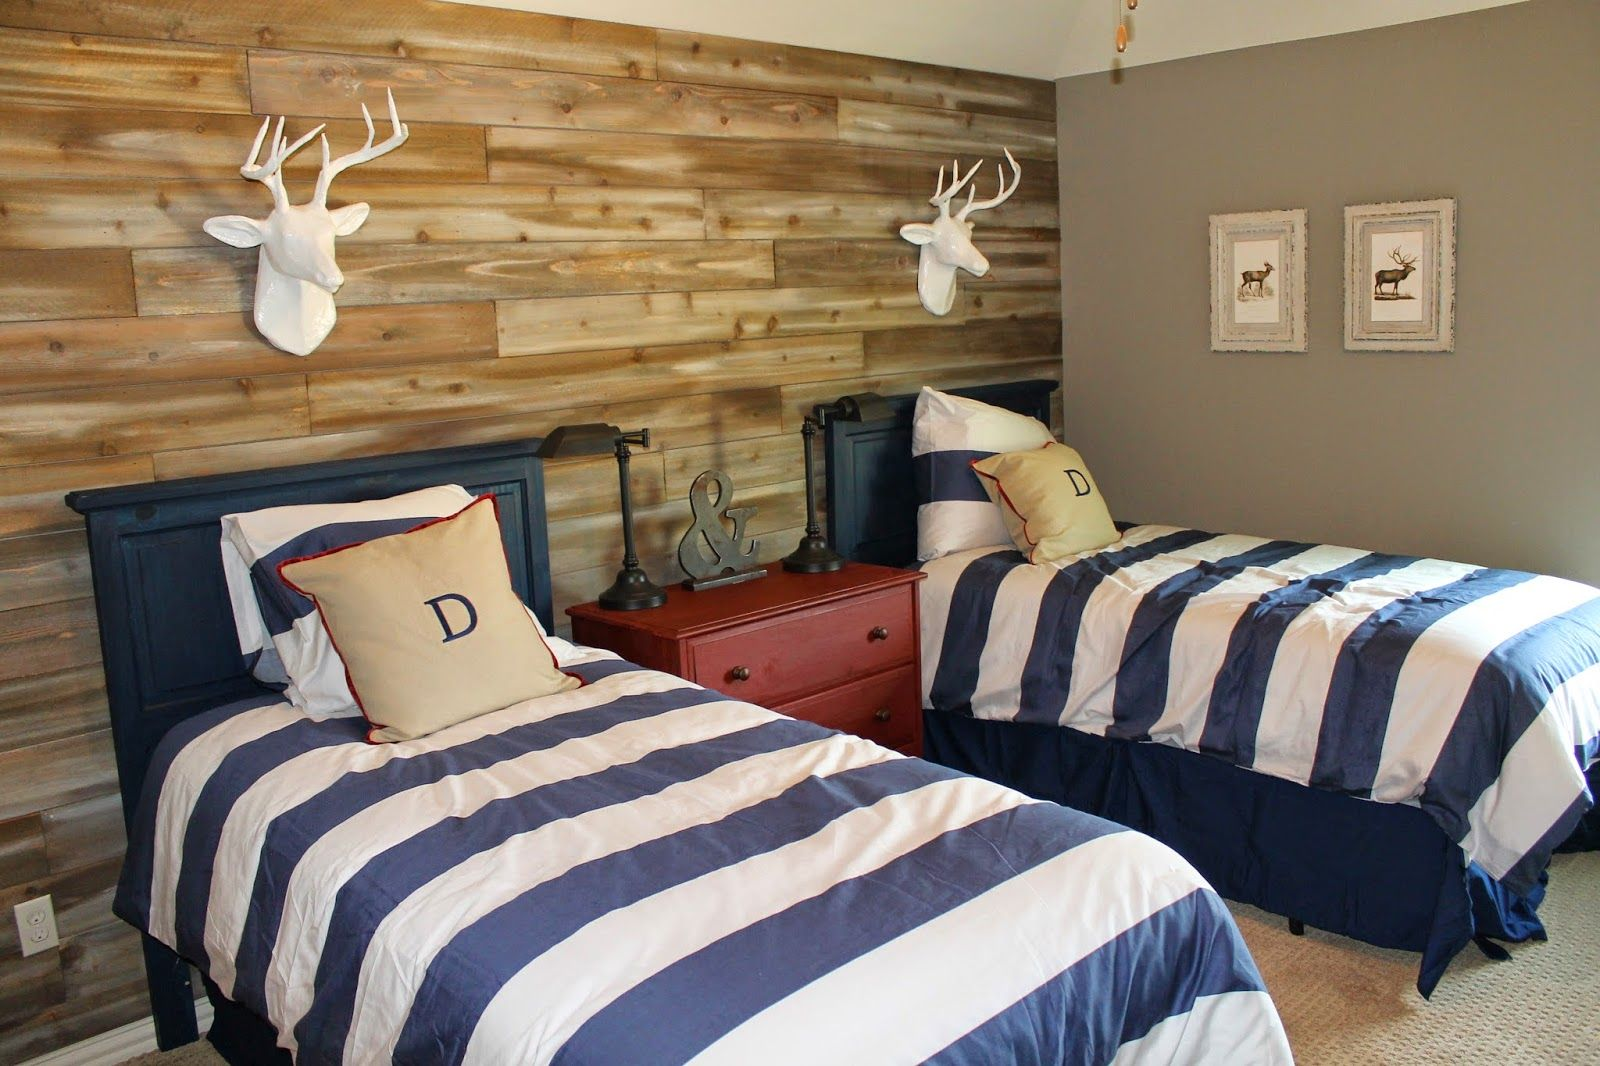 Shared boys bedroom designs - Woodland Themed Boys Room Shared Space Two Twin Beds